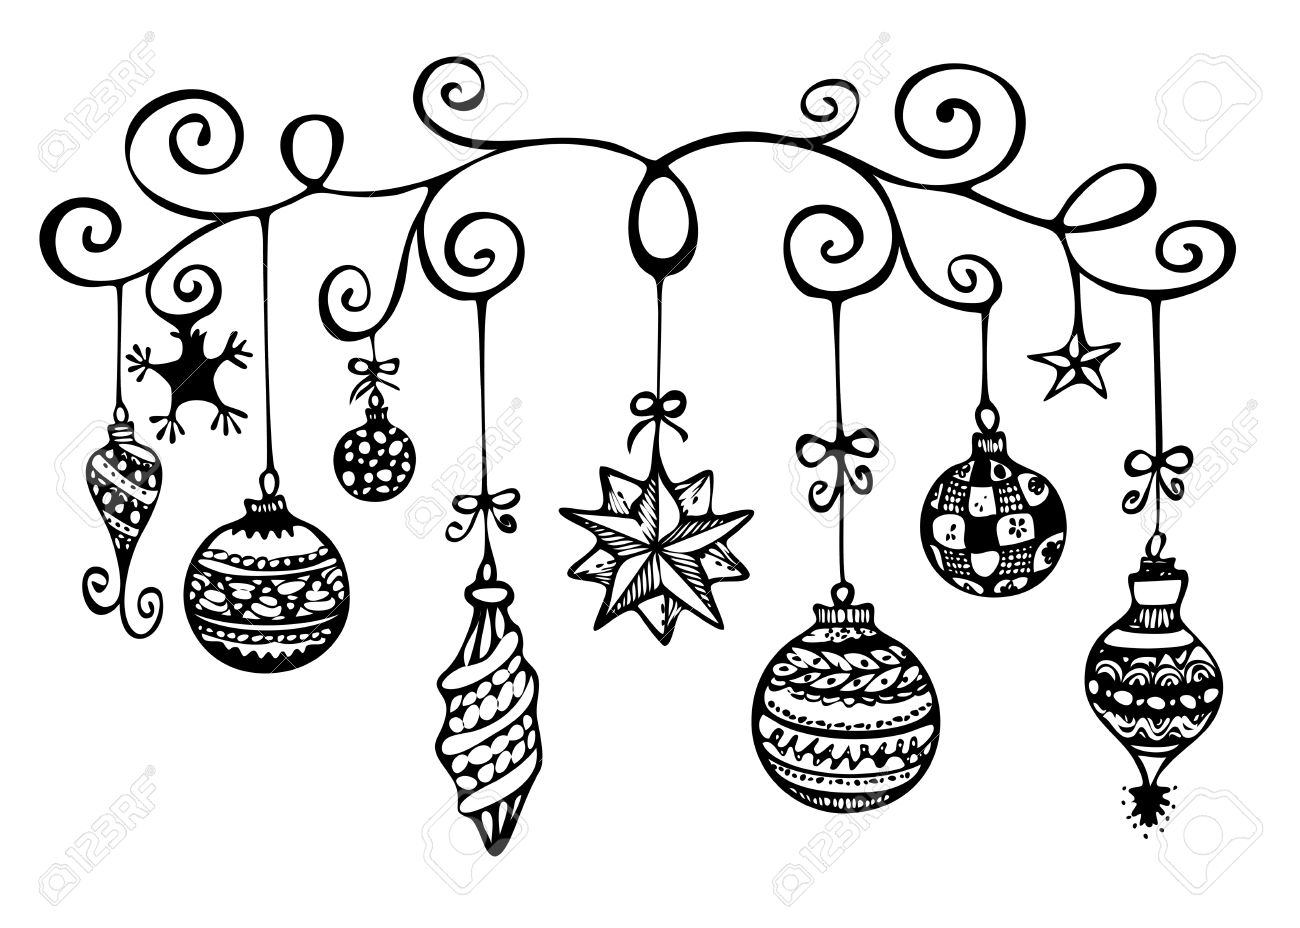 Black and white ornaments - Christmas Ornaments Sketch In Black And White Stock Photo 16979852